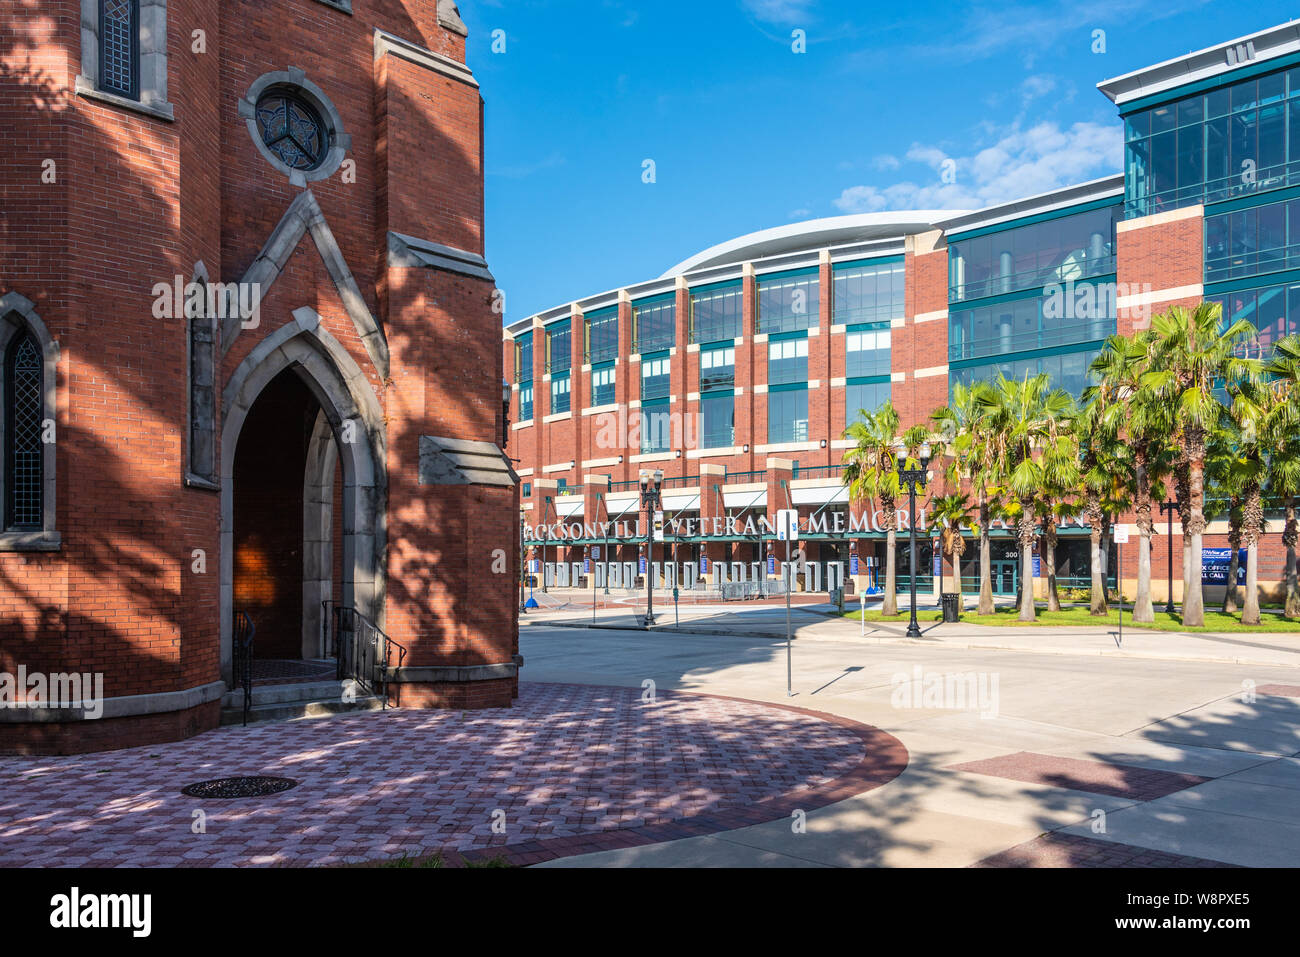 View of the VyStar Veterans Memorial Arena (formerly the Jacksonville Veterans Memorial Arena) from Old St. Andrew's in Jacksonville, Florida. (USA) Stock Photo